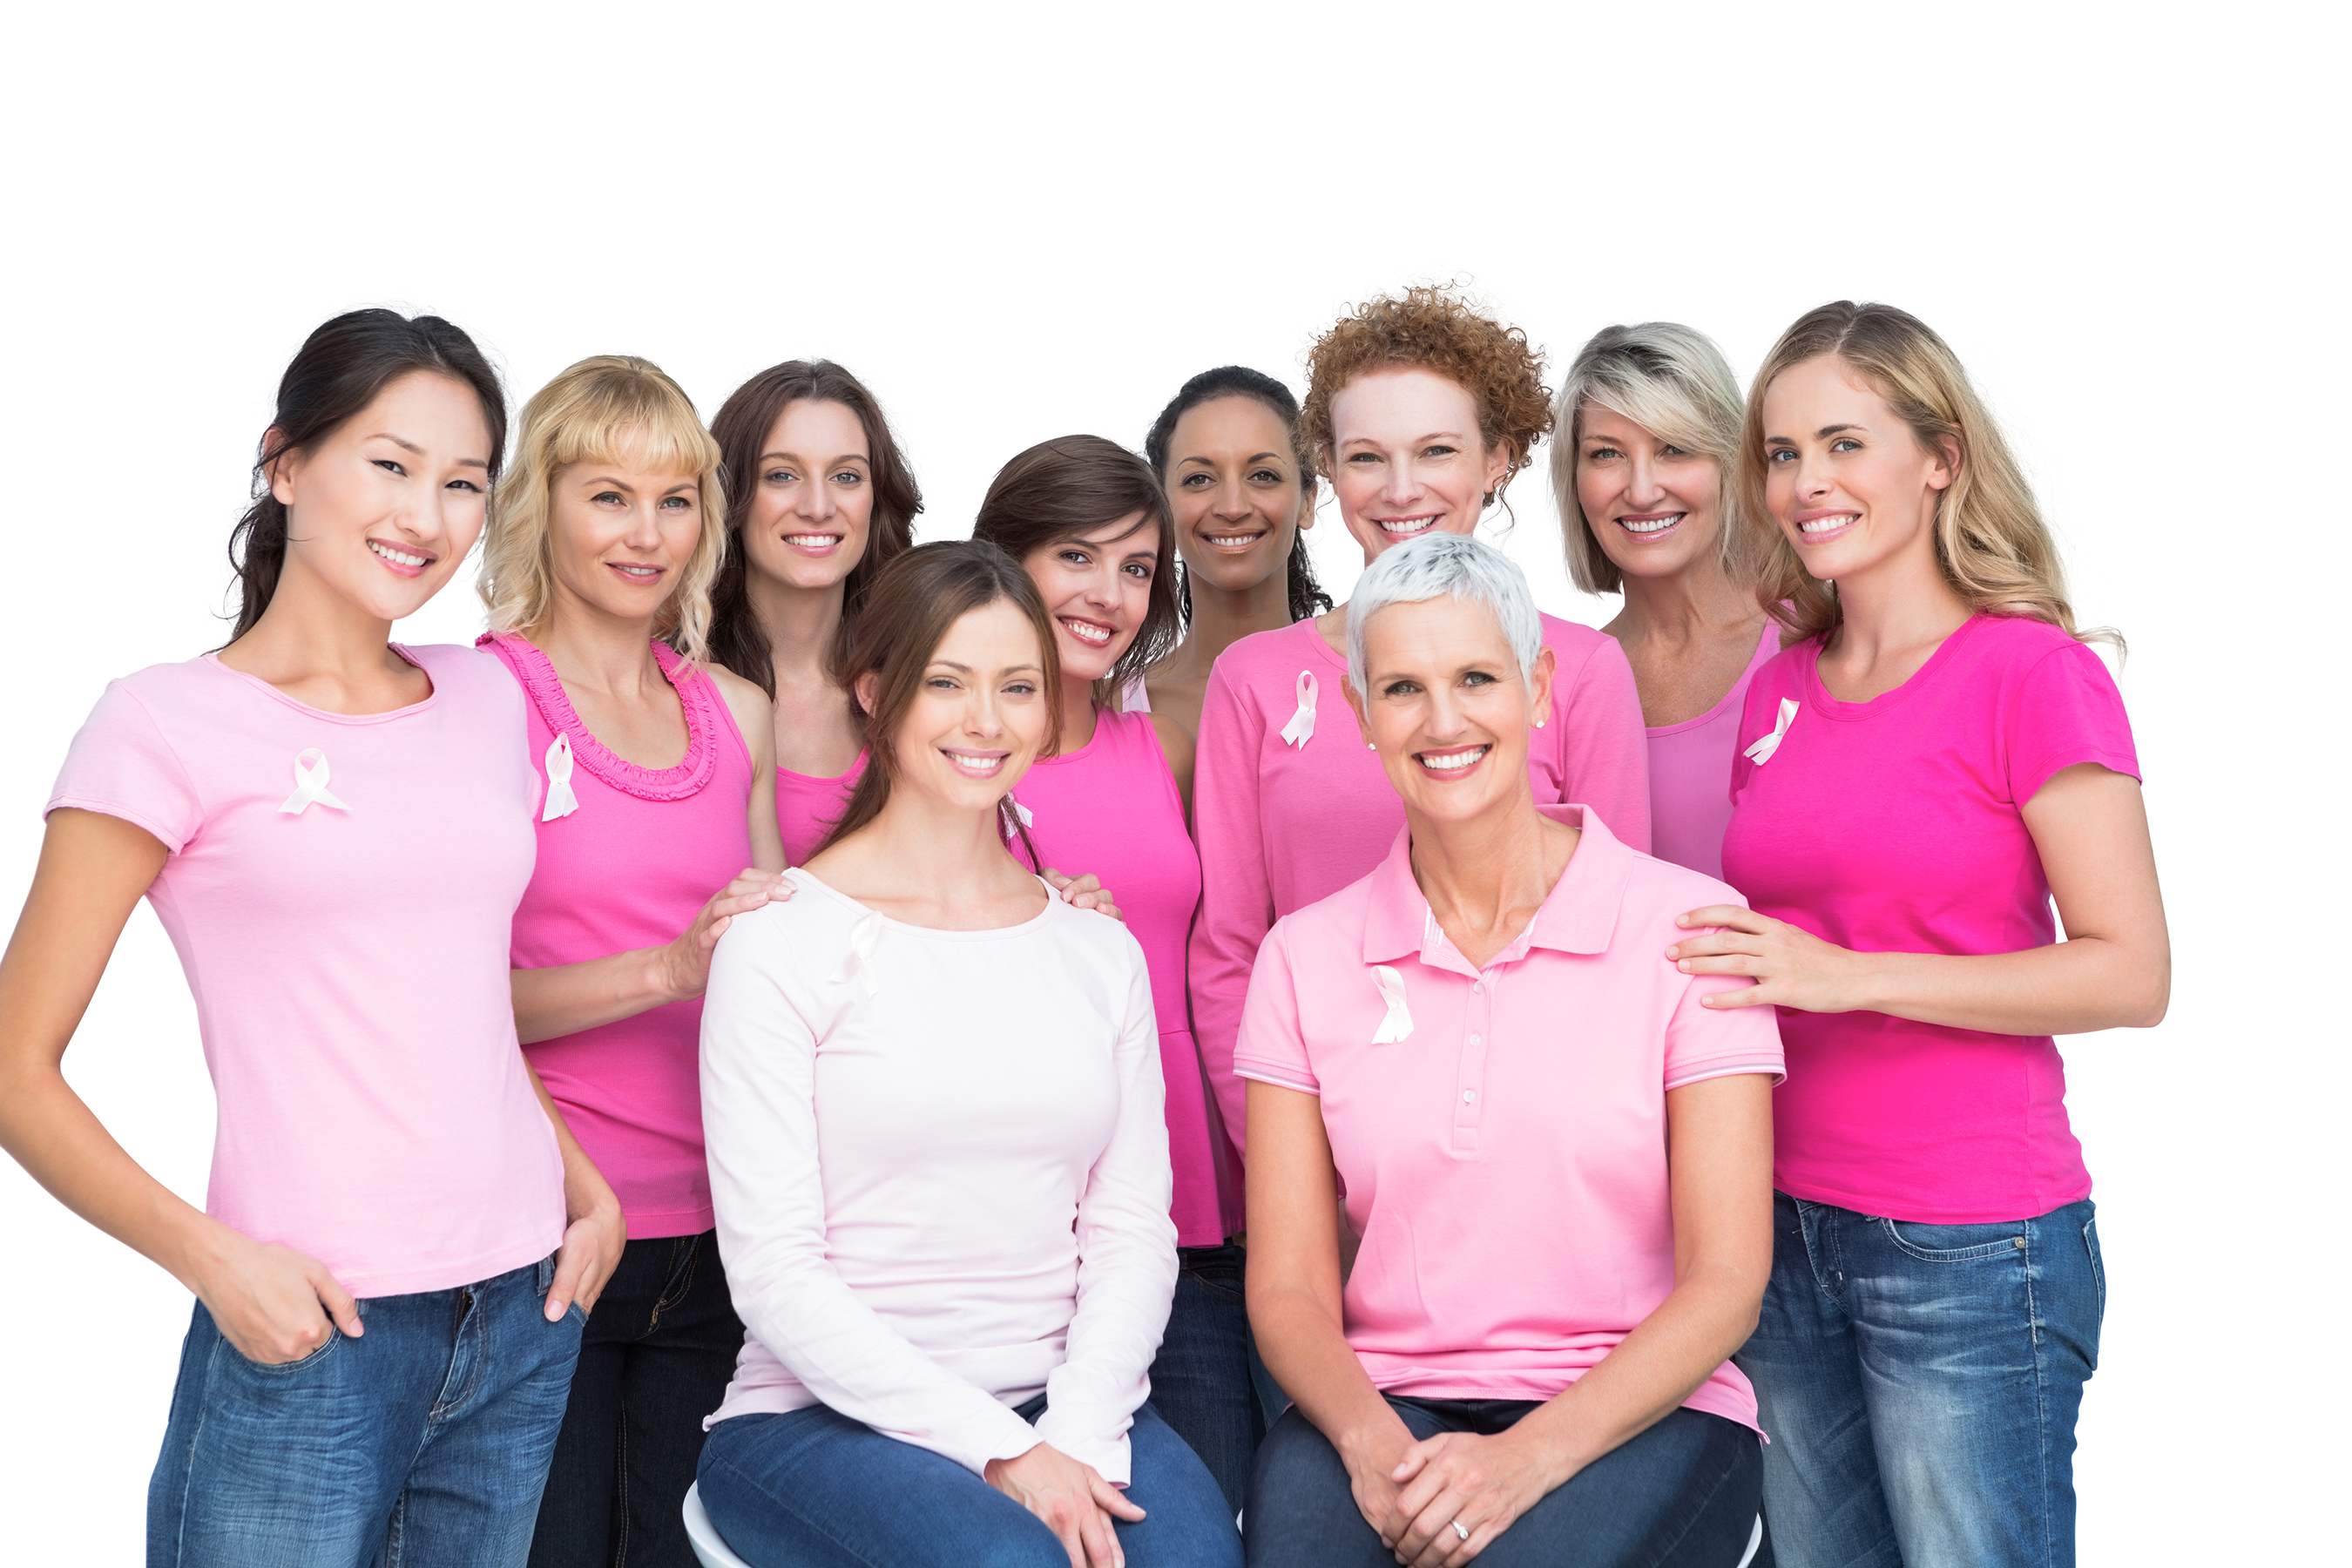 Group of women raising breast cancer awareness